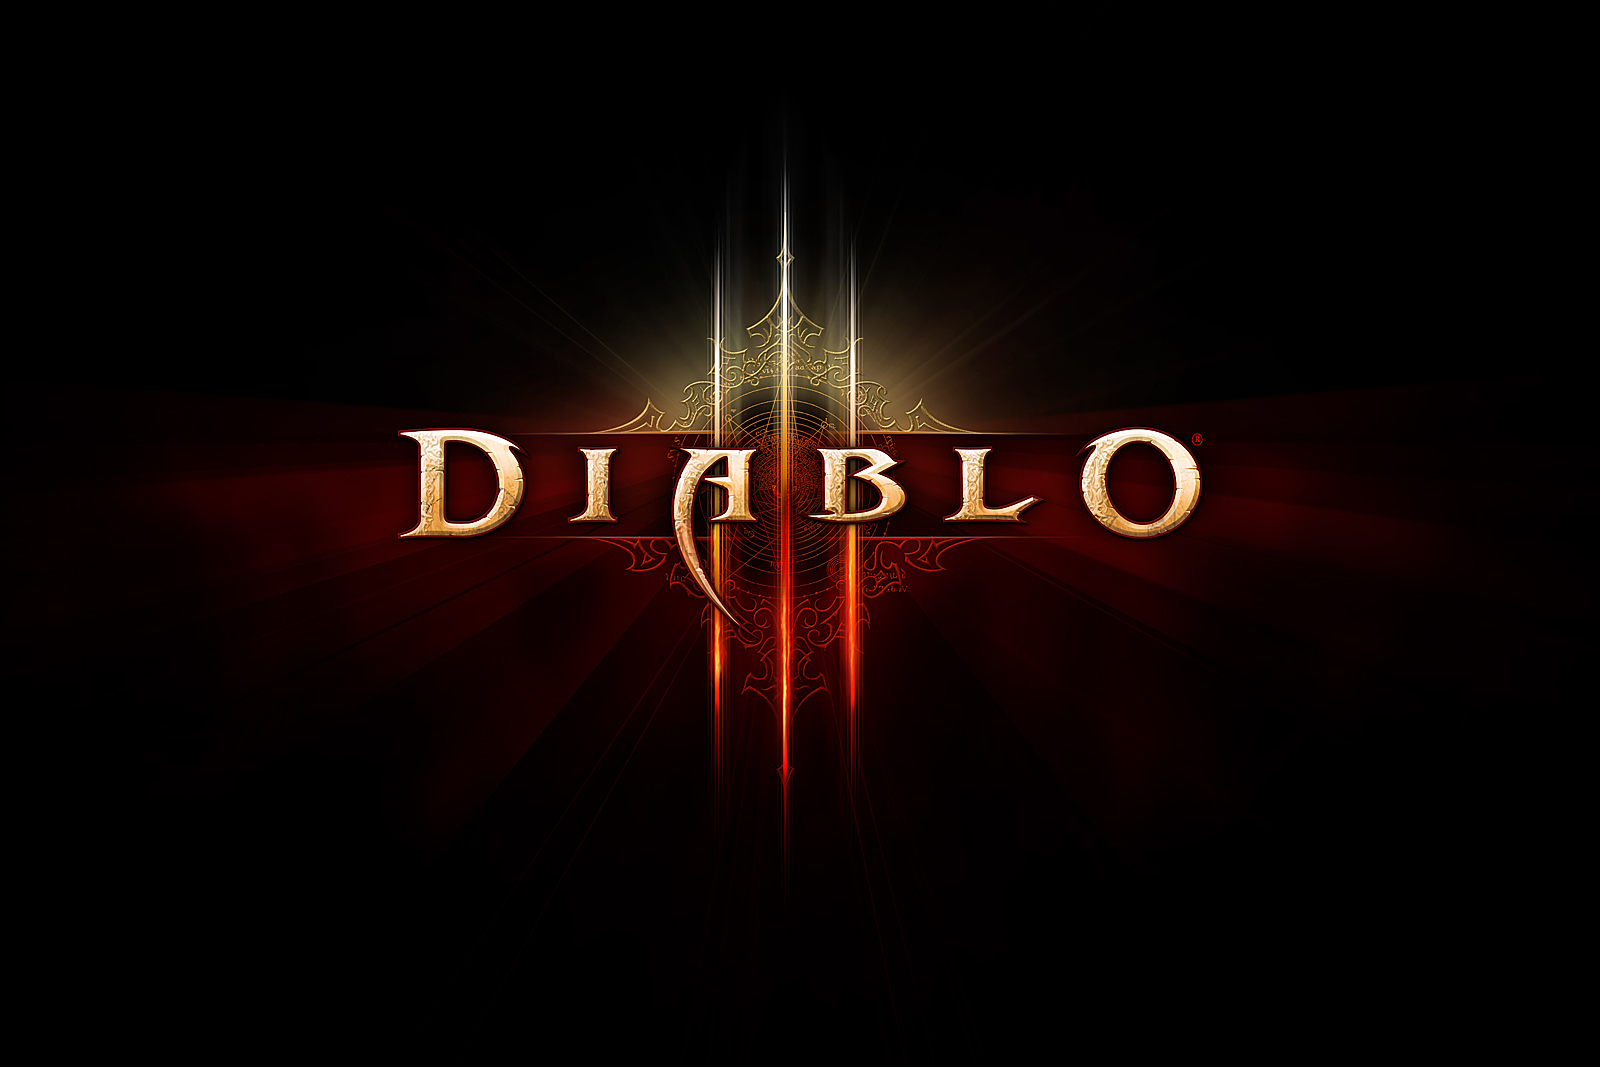 Diablo3 Artwork 0001 Full